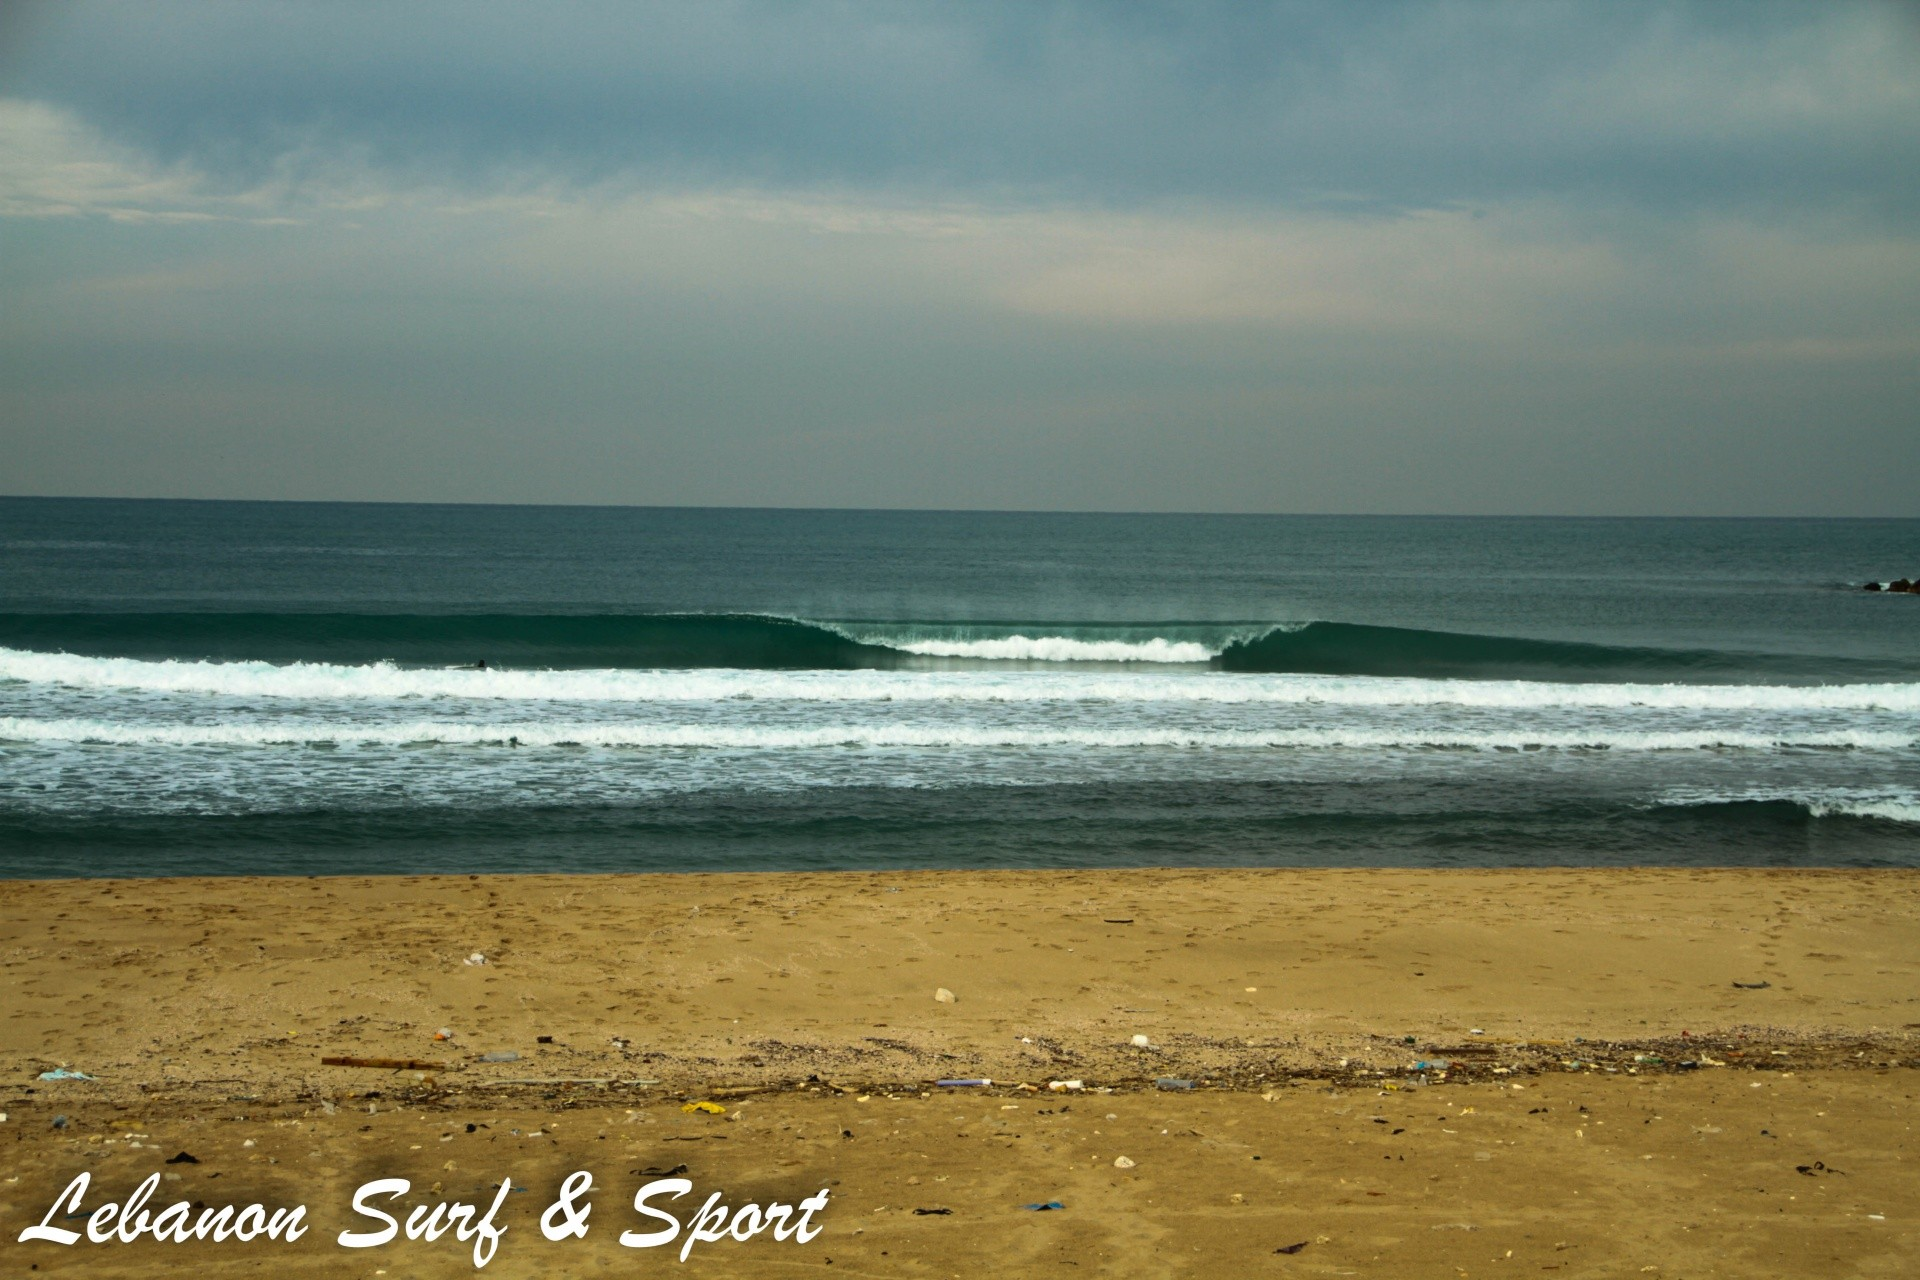 surf lebanon's photo of Mustafas A frame